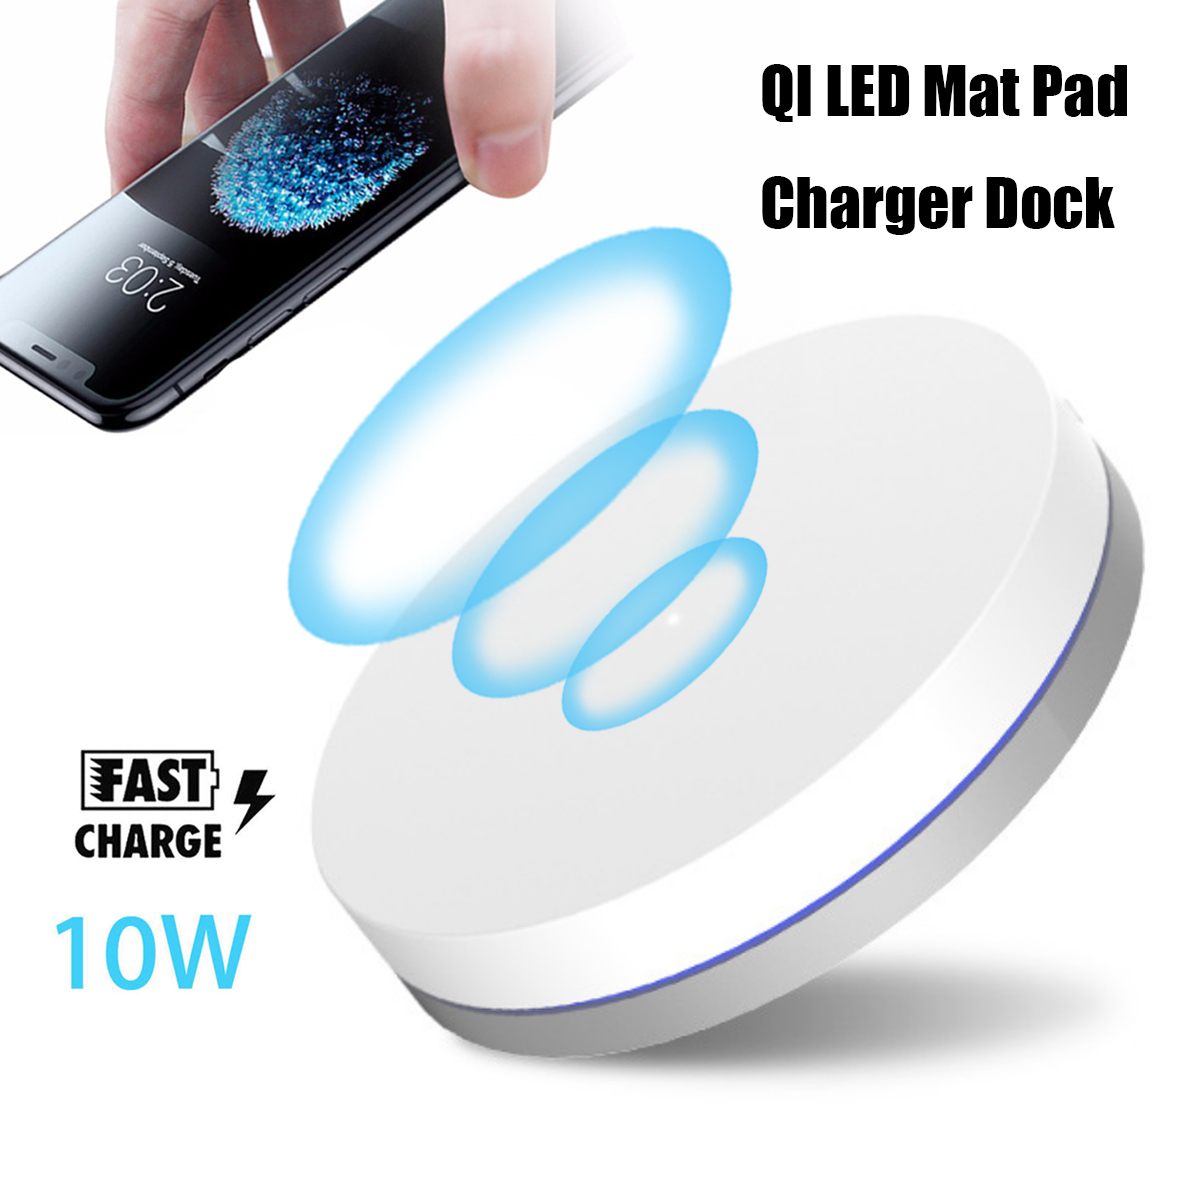 10W Fast Qi Wireless Charging Dock Charger Pad Mat Aluminum With LED Light For iphone X 8/8Plus Sams